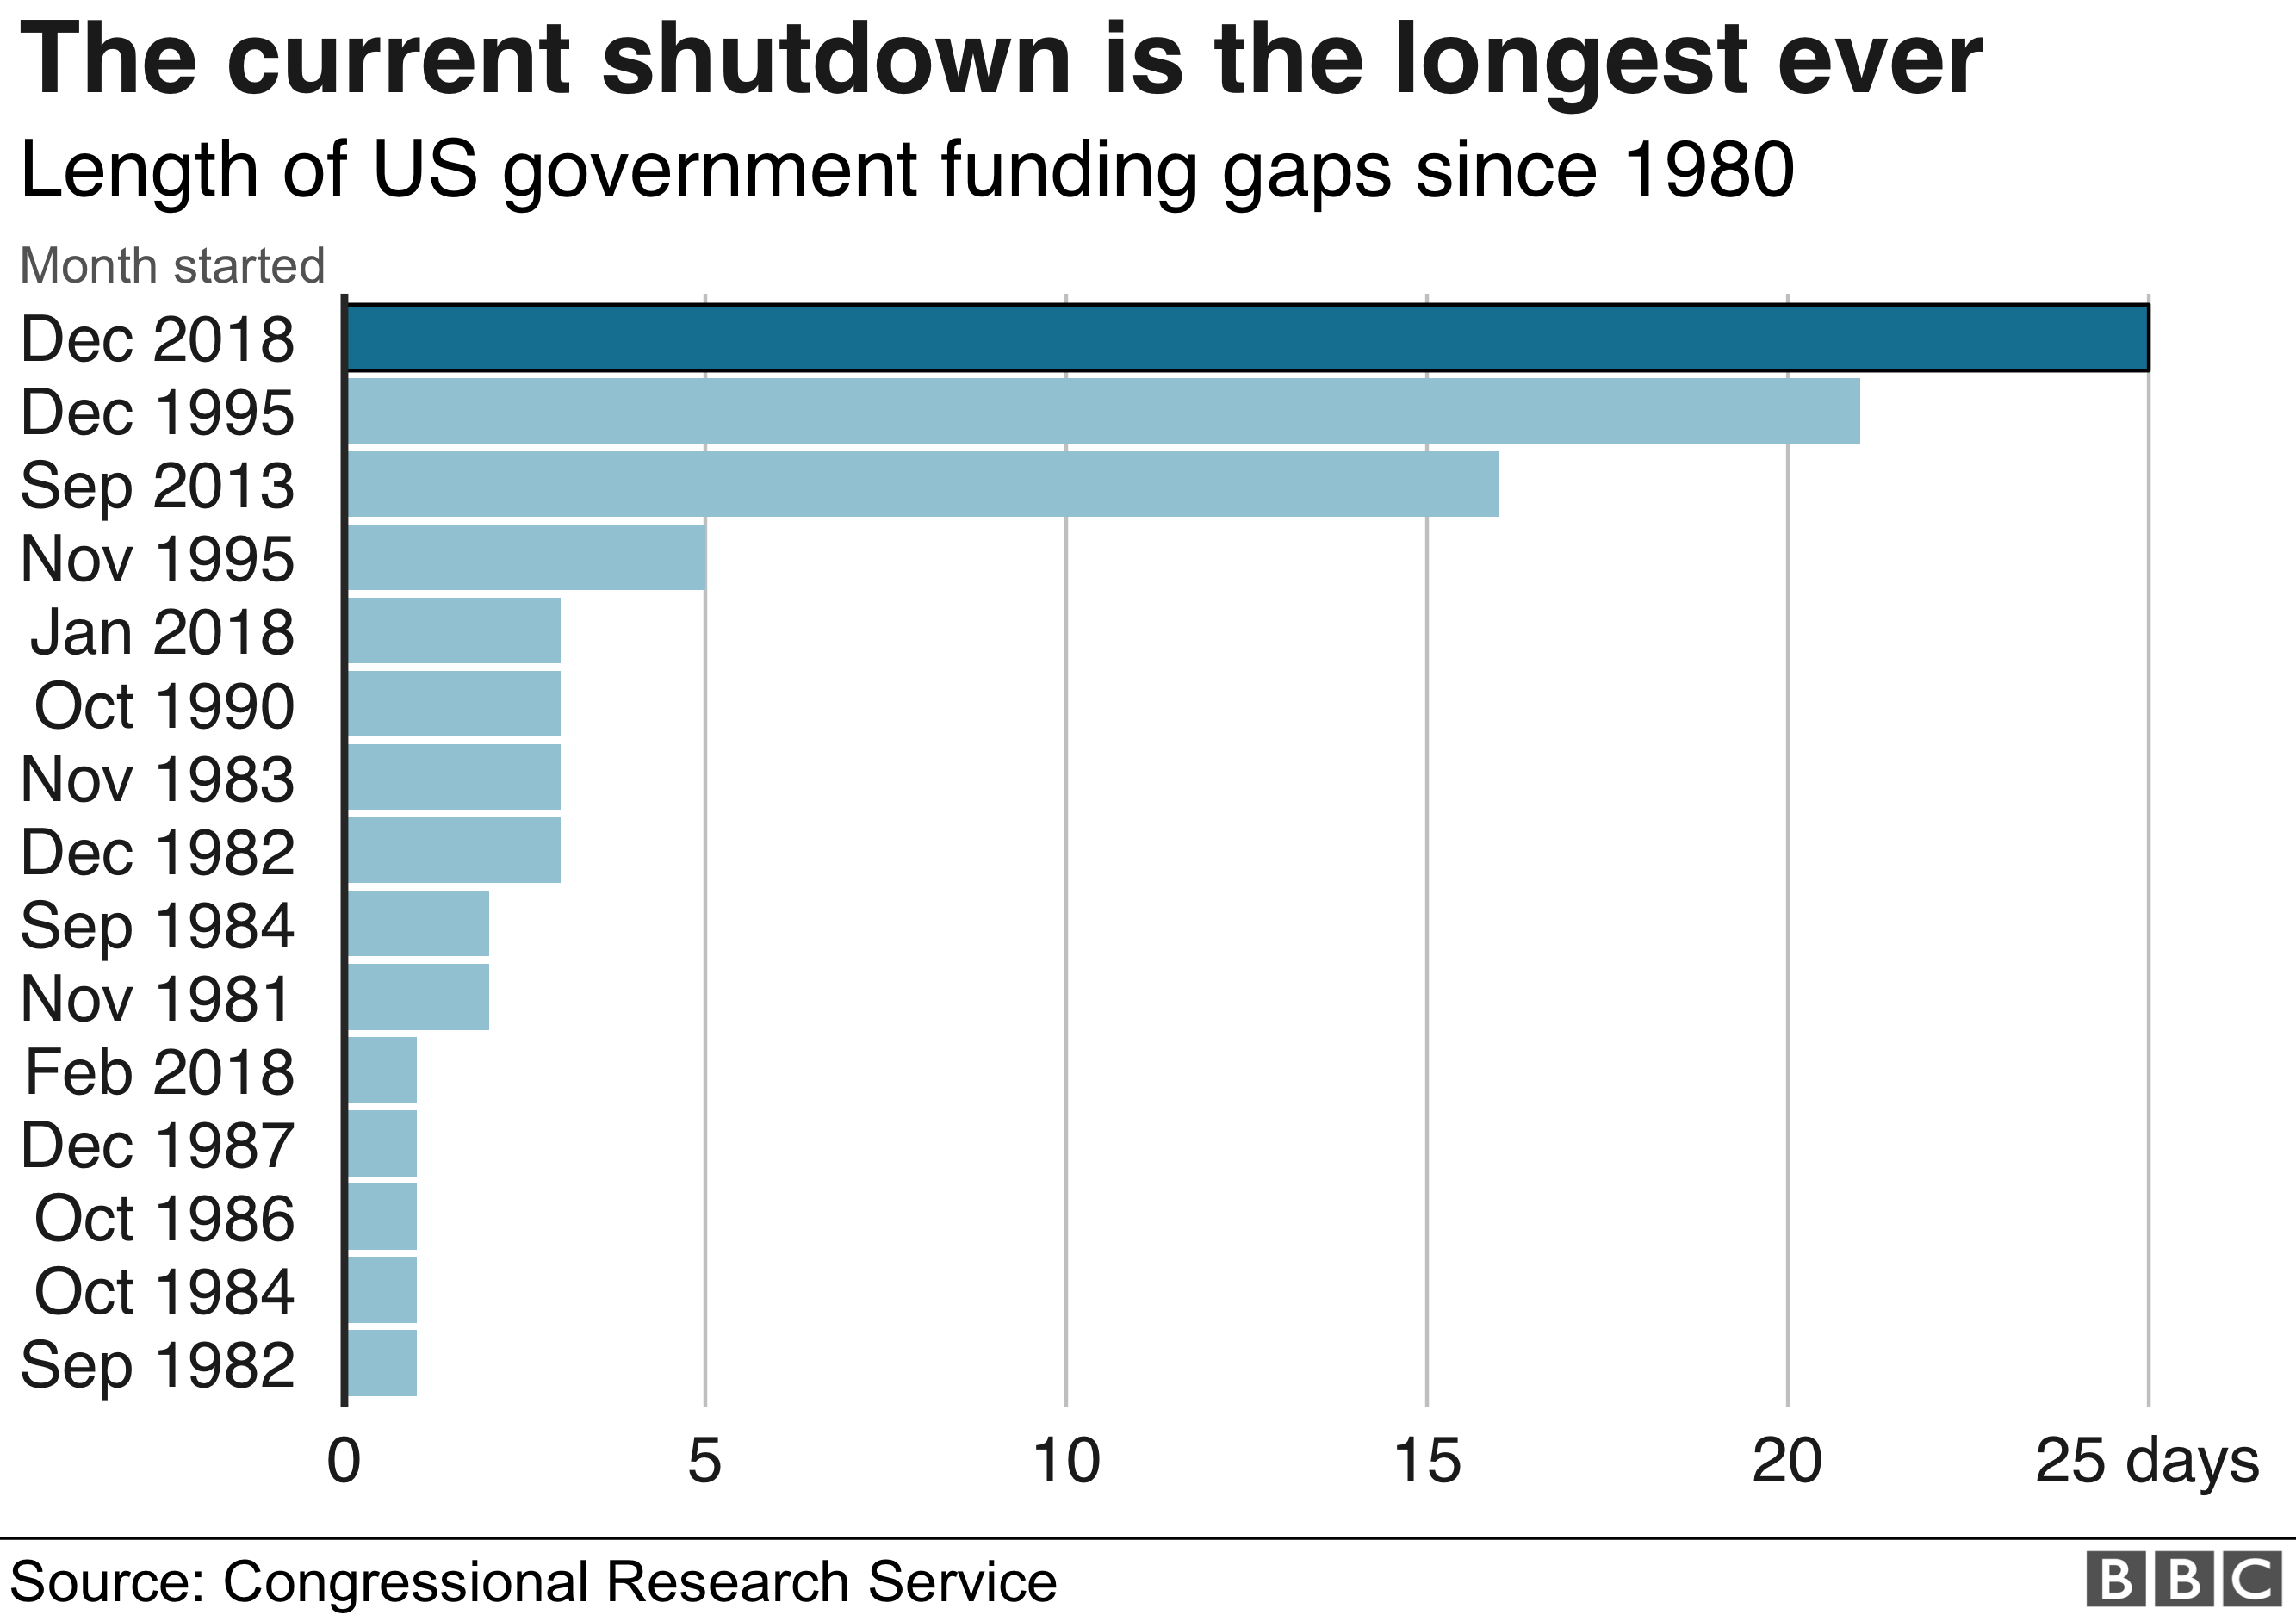 Graphic showing shutdowns in the US down the ages